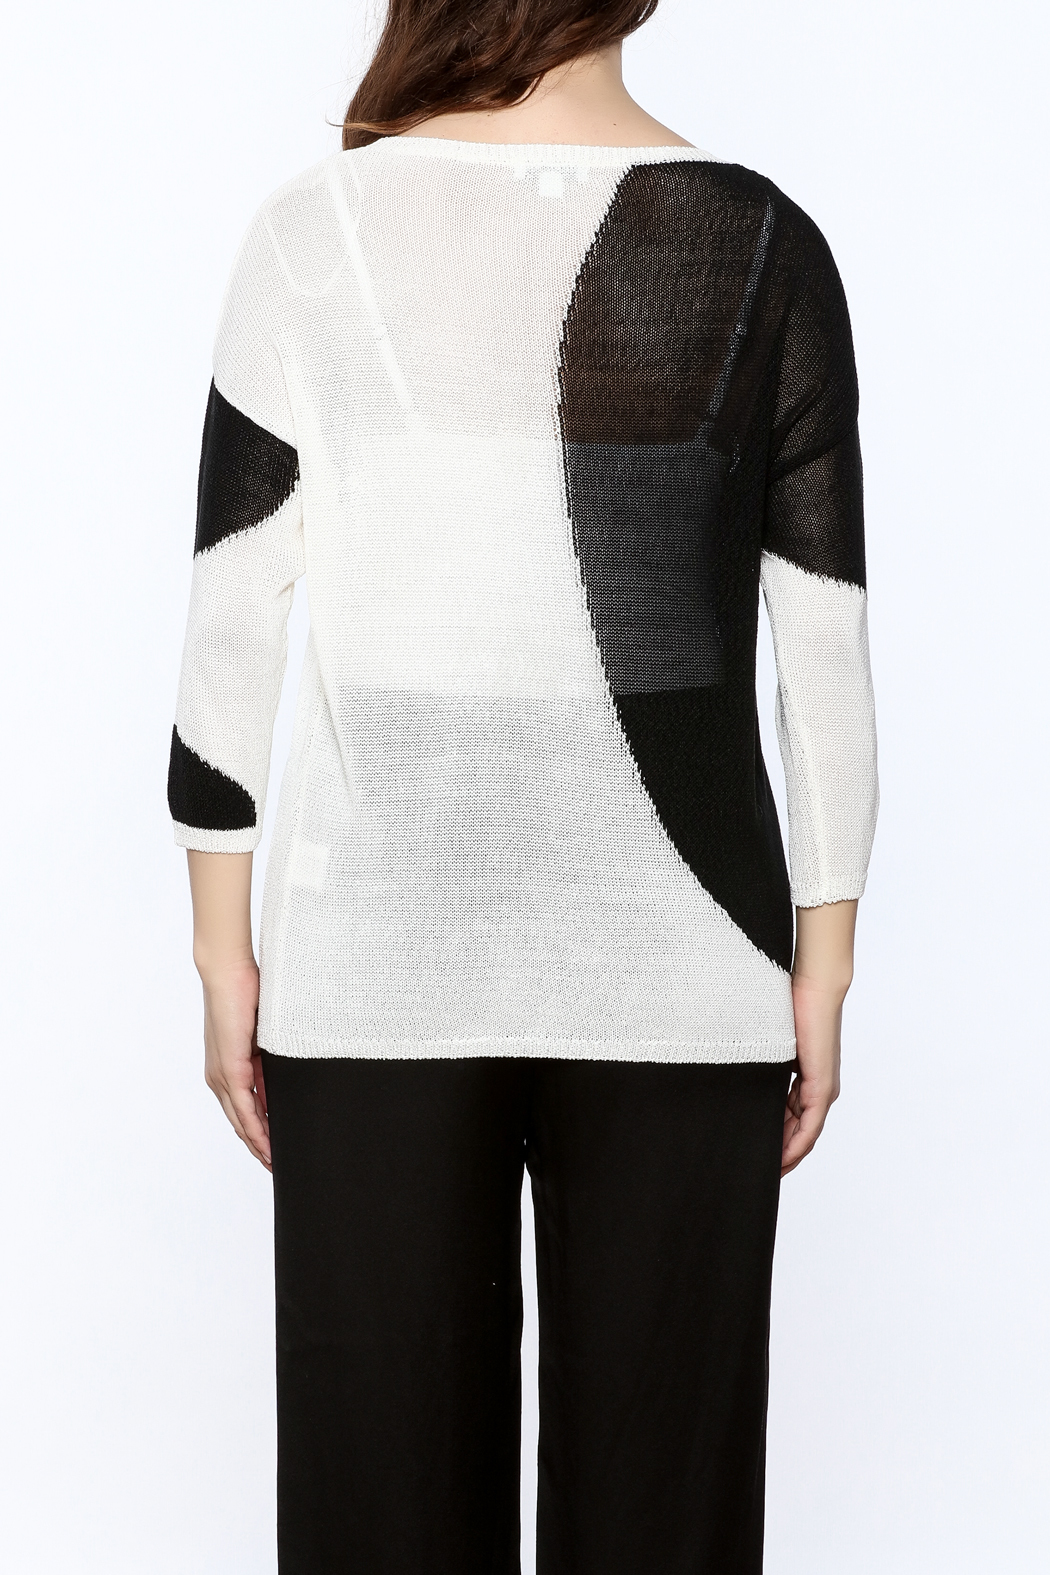 Katherine Barclay White And Black Sweater - Back Cropped Image